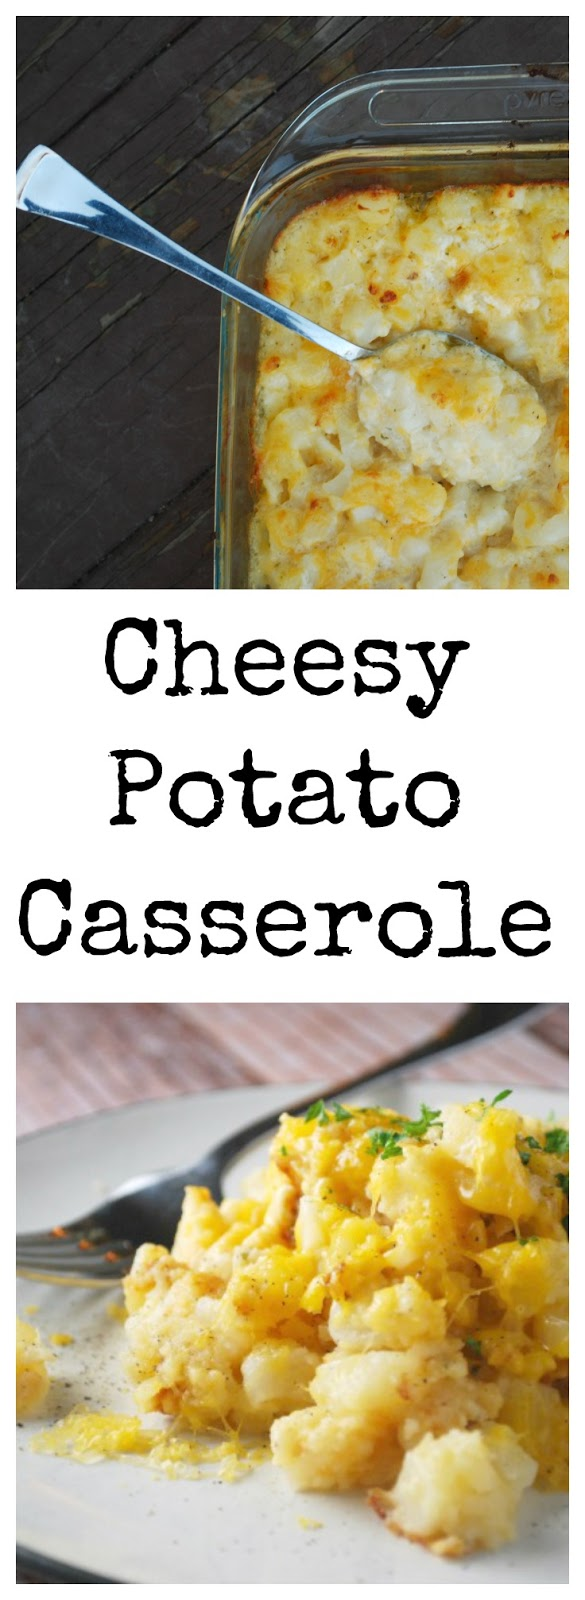 This cheesy potato casserole is the perfect side dish for your holiday menu! Easy, delicious, and so cheesy! You will be wishing for leftovers! Perfect Holiday Cheesy Potato Casserole, Holiday Side Dish, Side Dish recipe, Christmas Recipe, Thanksgiving Side Dish